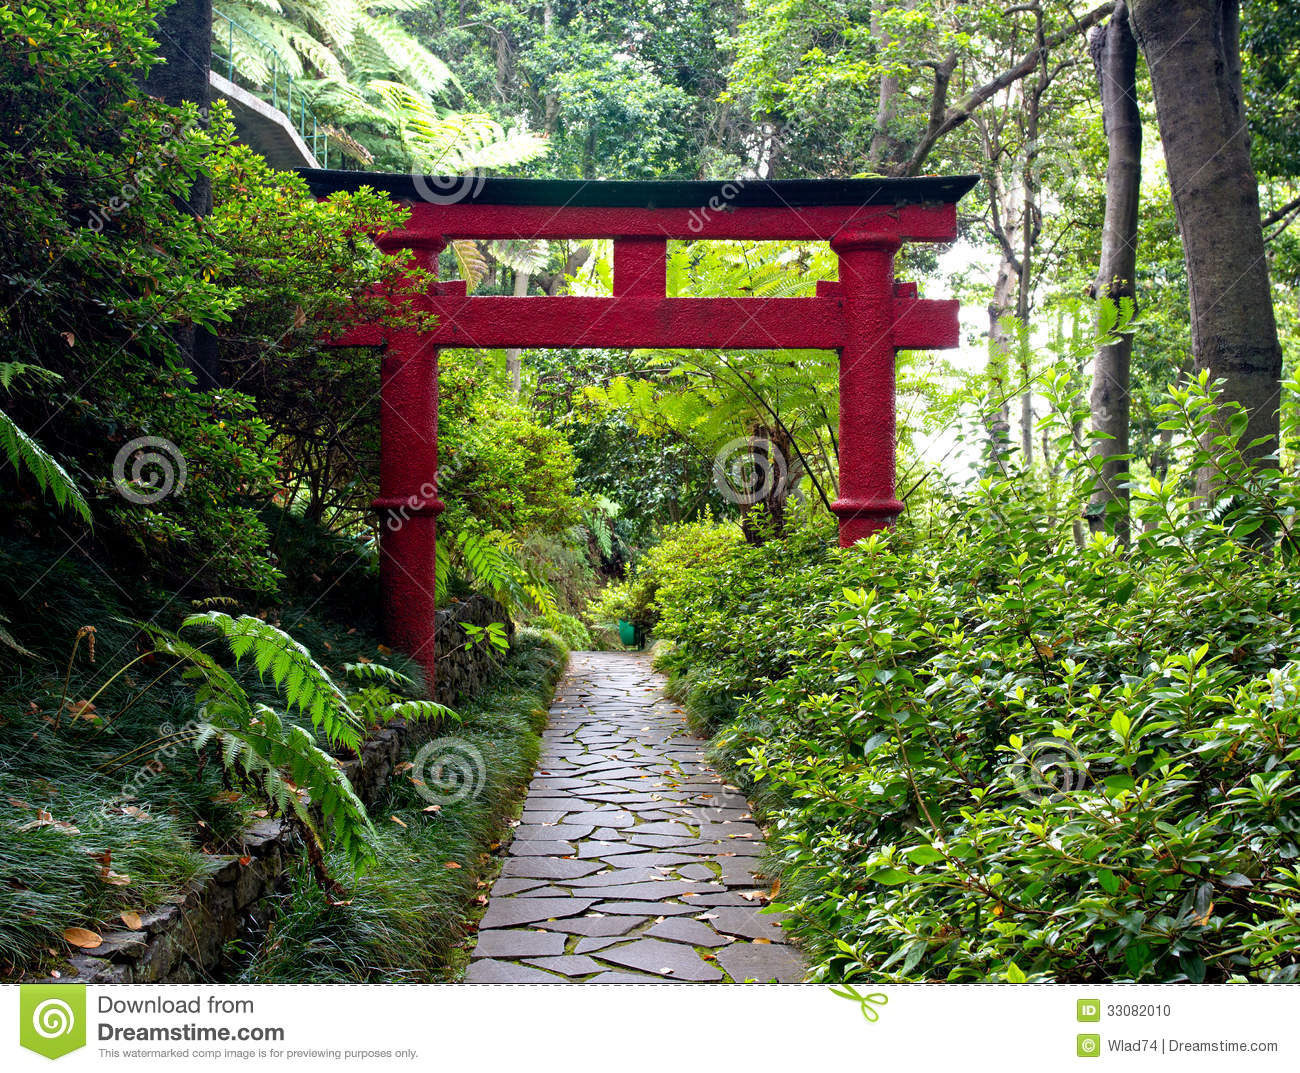 Japanese Torii Gate And The Stone Pathway In Zen Garden Stock